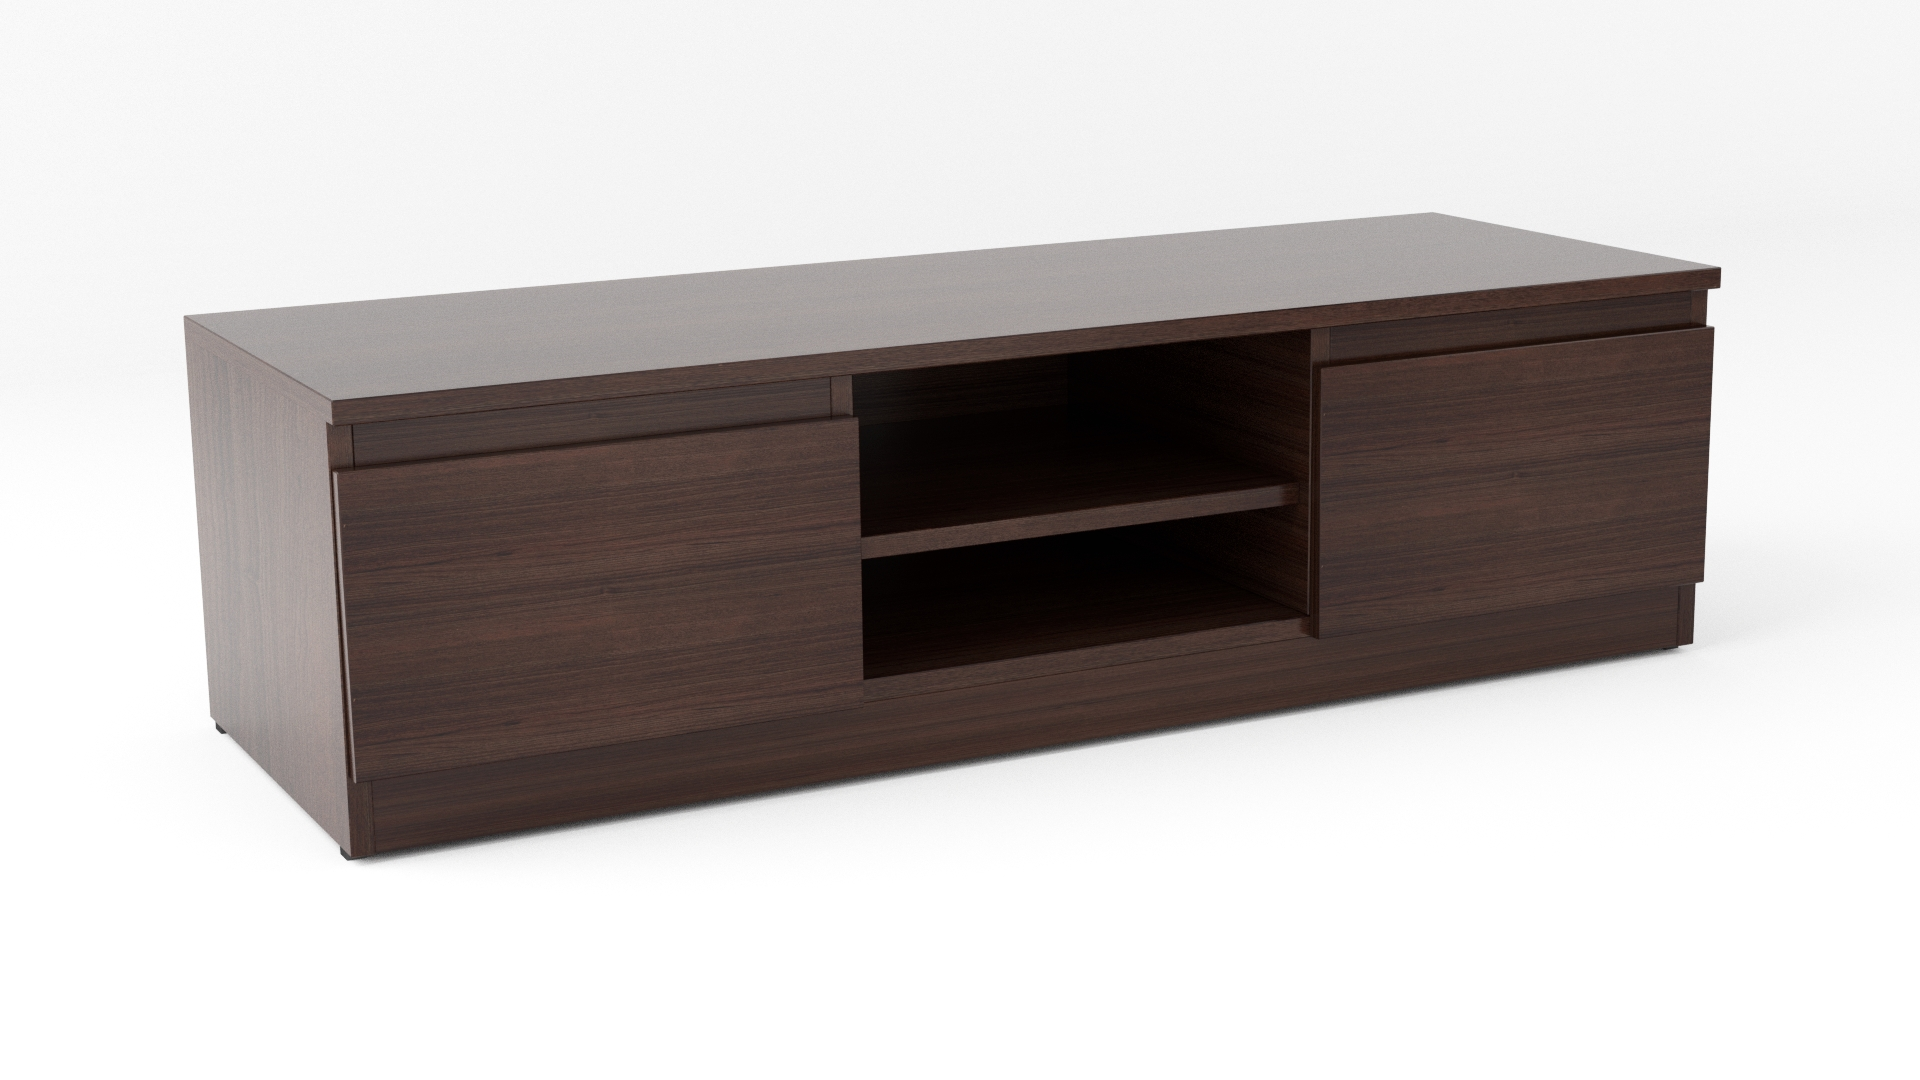 Wenge Matt Modern Tv Cabinet - Code 35 throughout Wenge Tv Cabinets (Image 14 of 15)